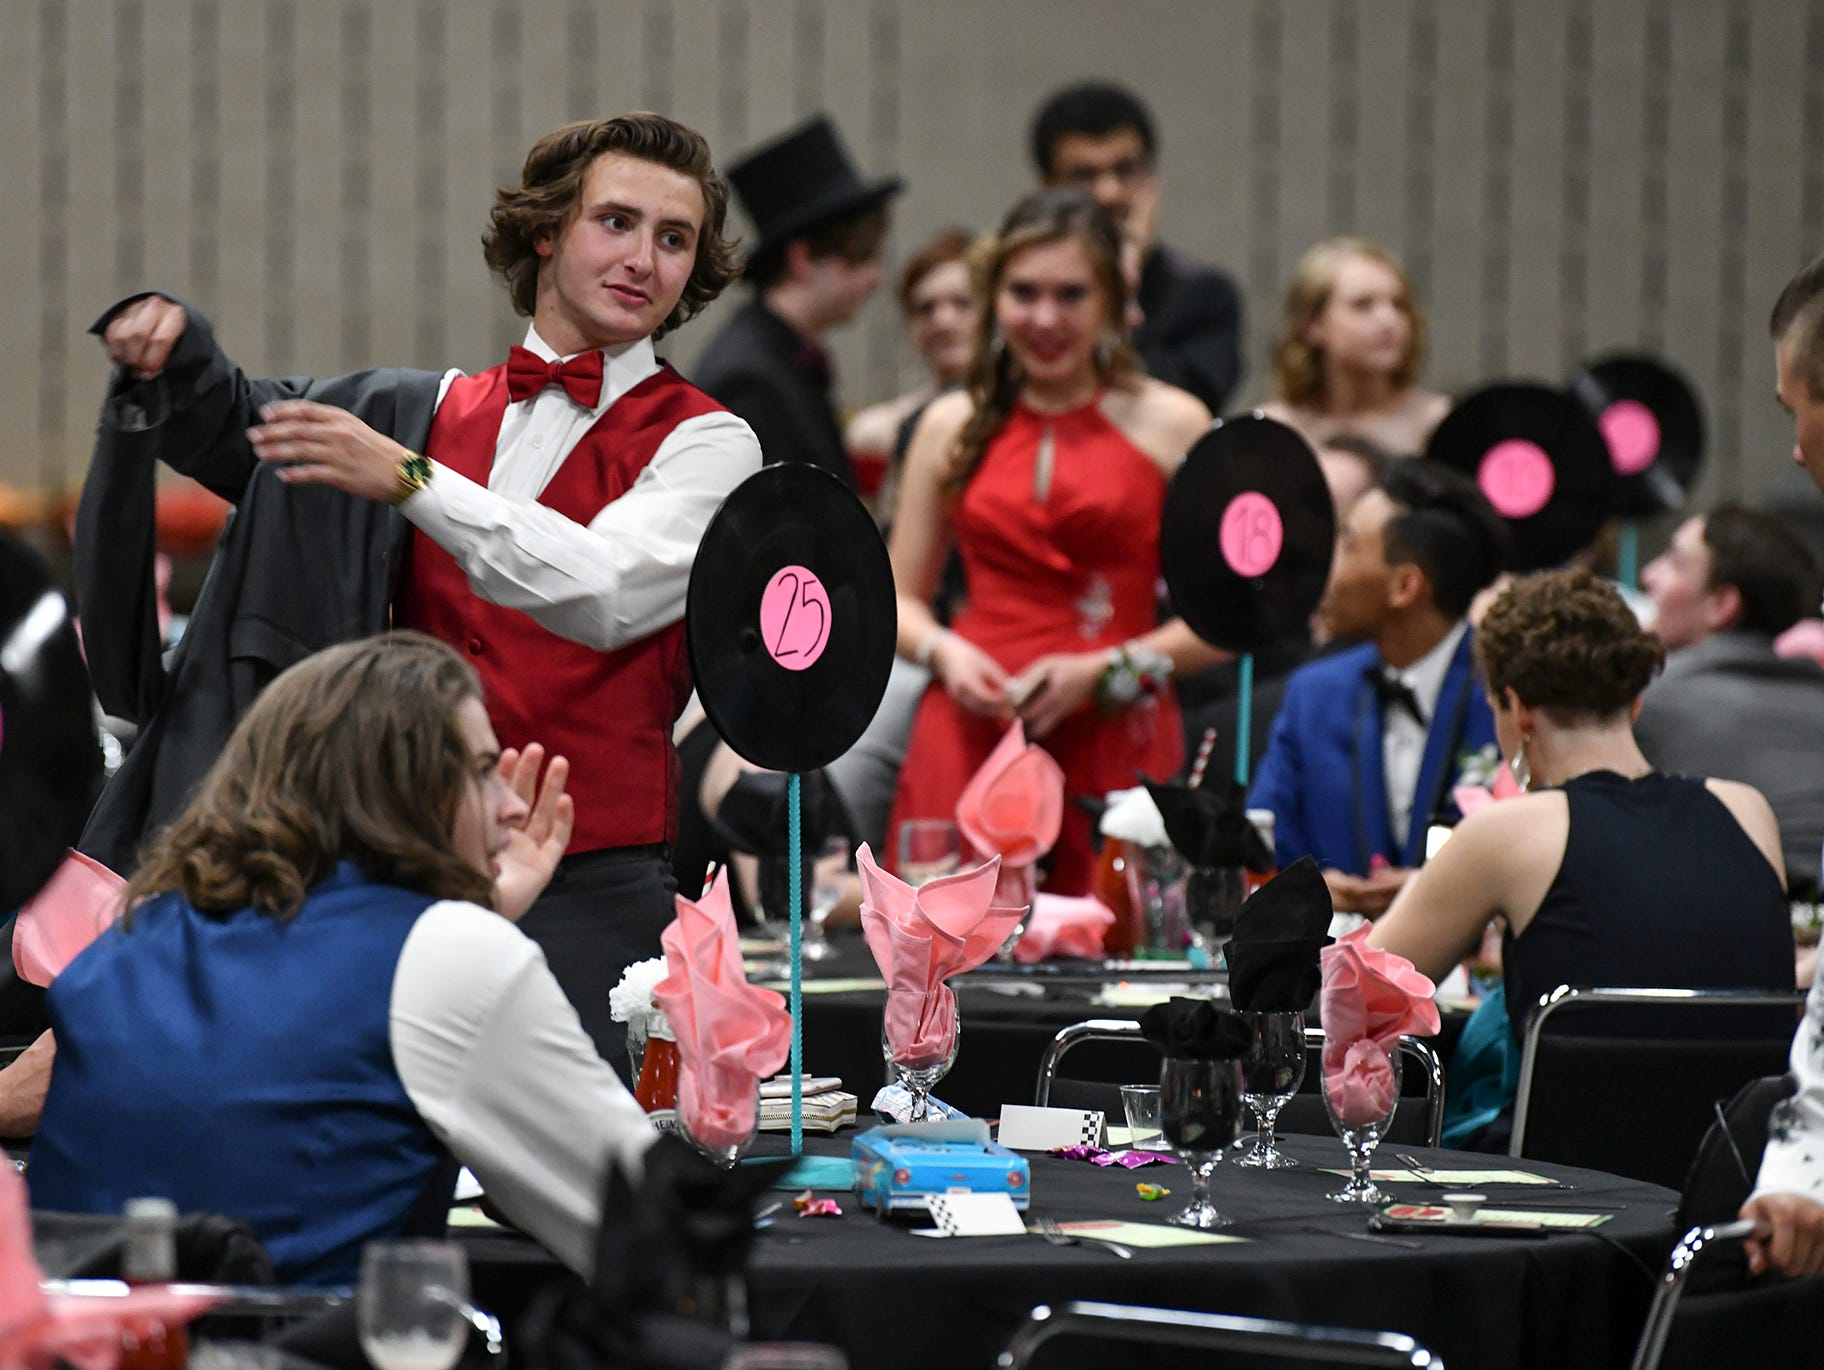 Students gather at 50s-themed tables during Sartell High School's prom Saturday, May 4, at the River's Edge Convention Center in St. Cloud.